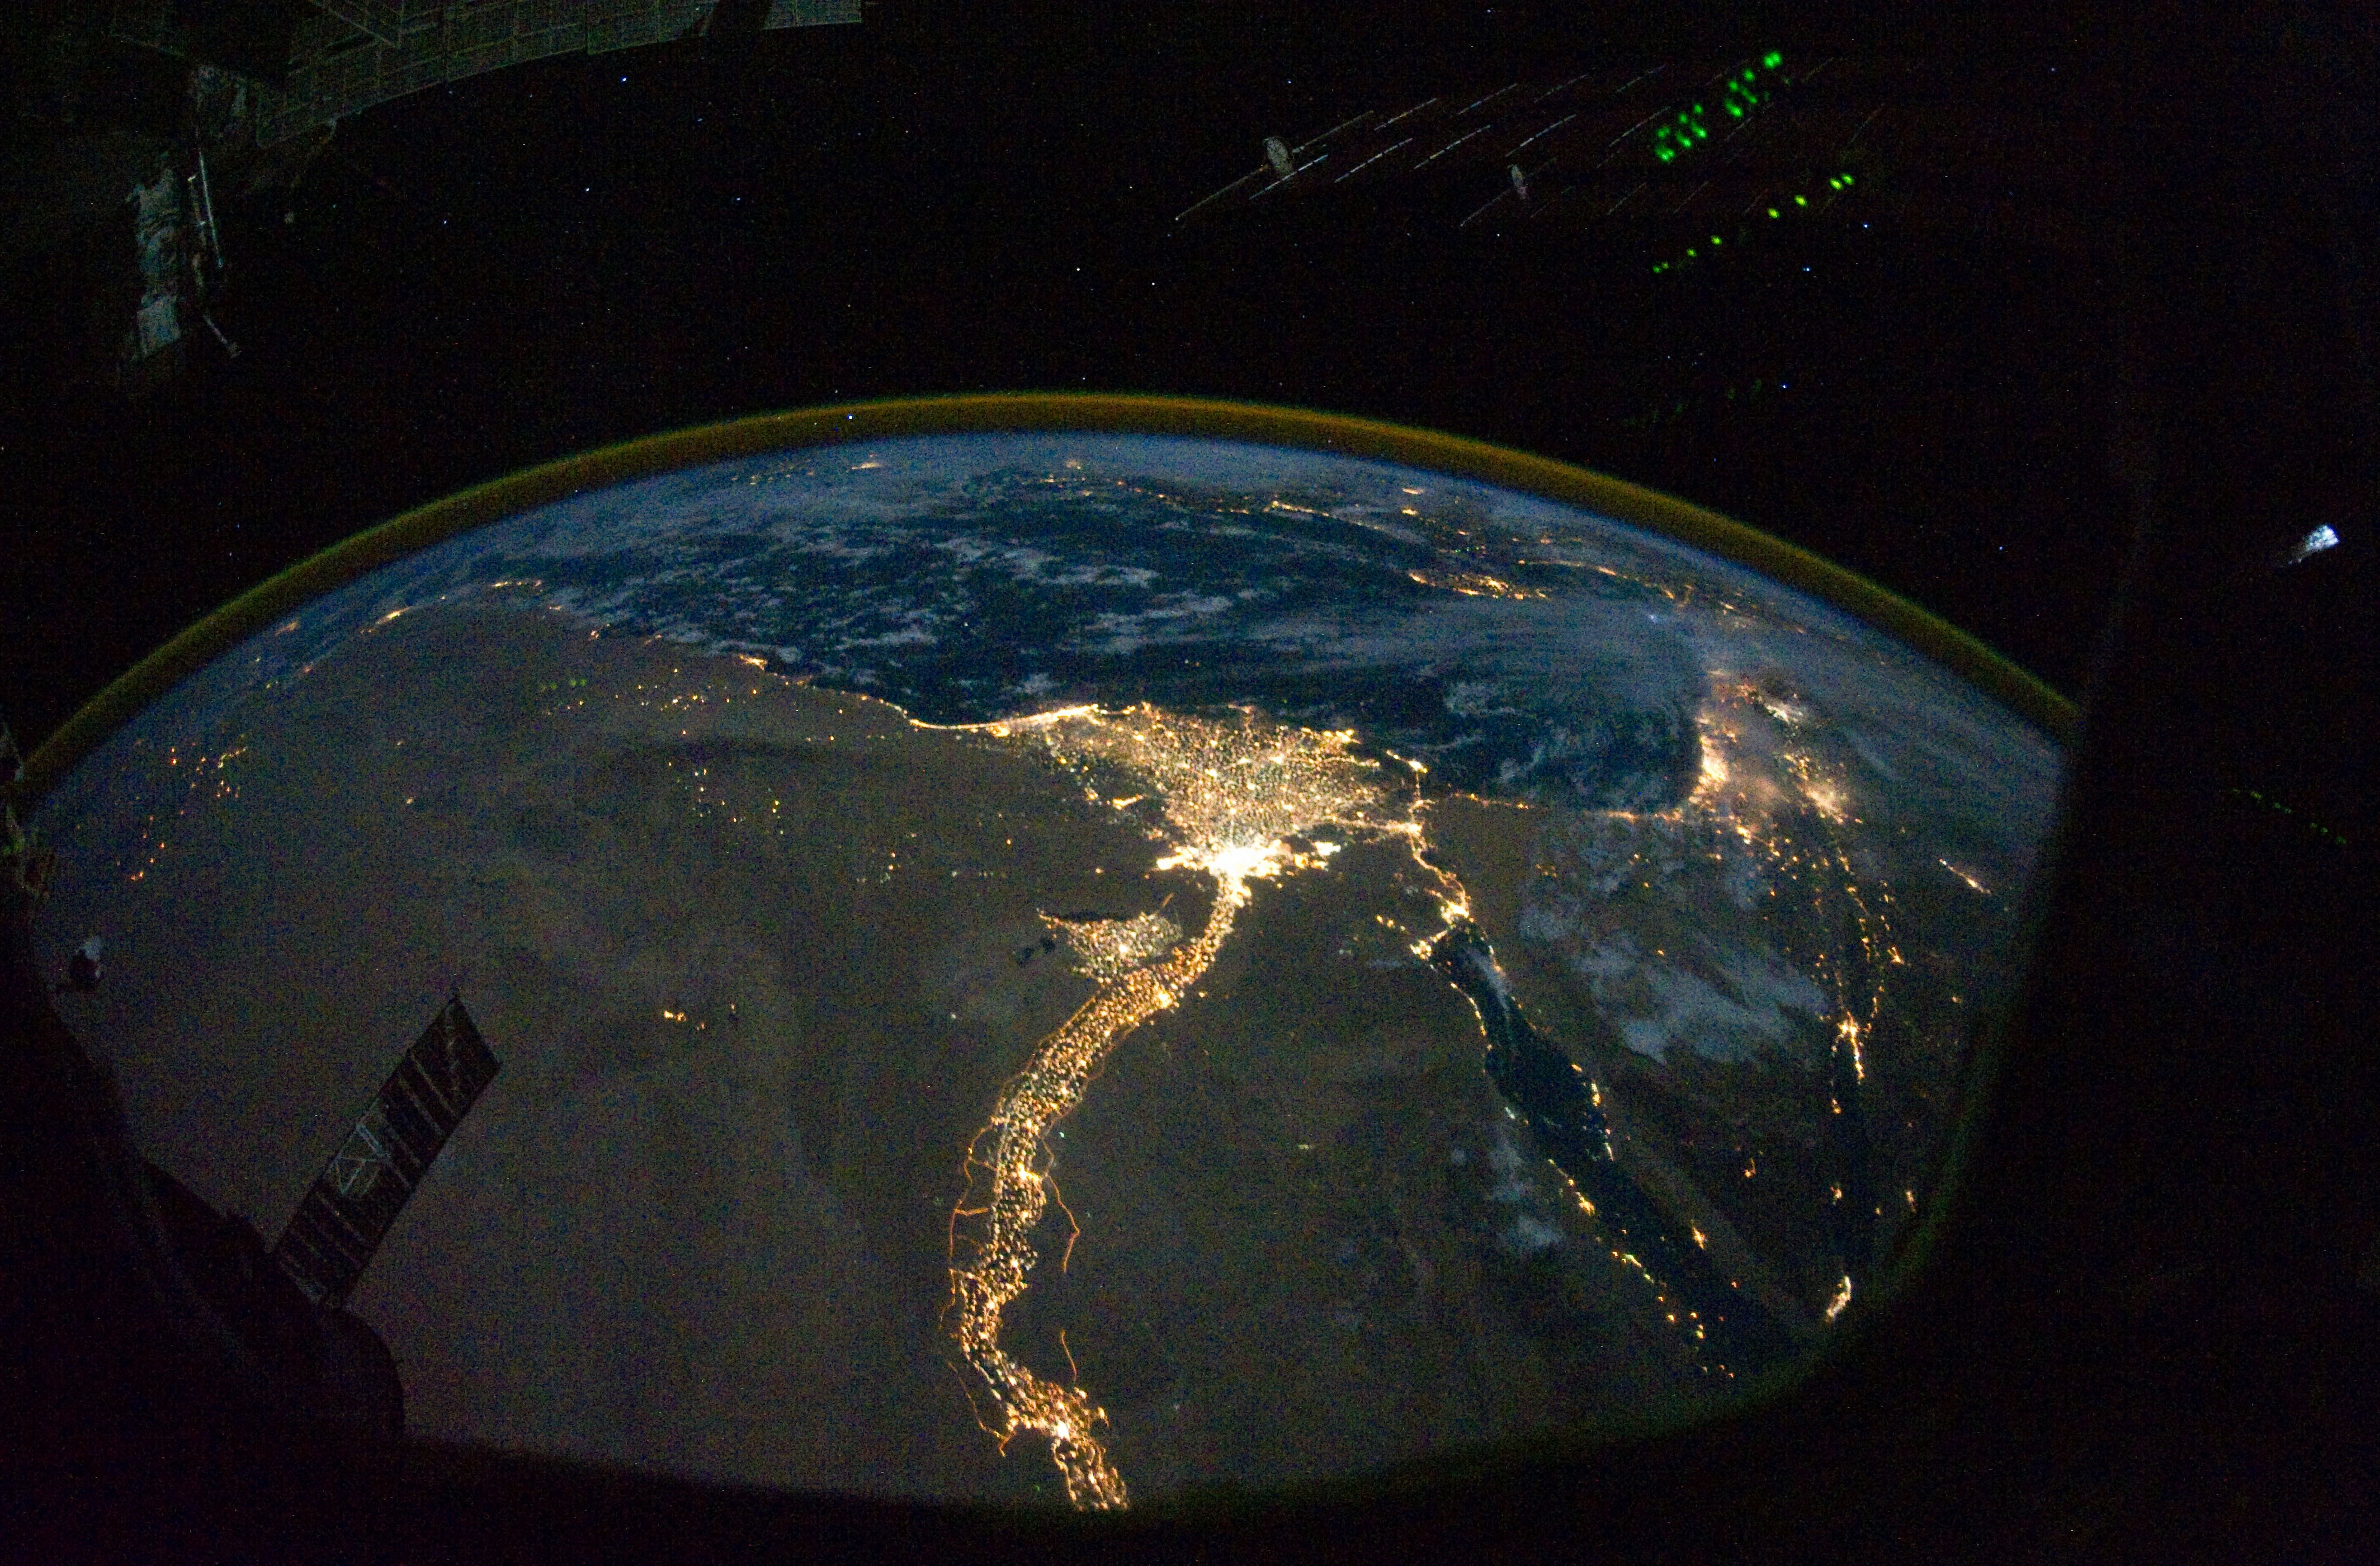 Cairo_and_Alexandria_Egypt_at_Night_NASA_International_Space_Station_Science_10_28_10_12868402644